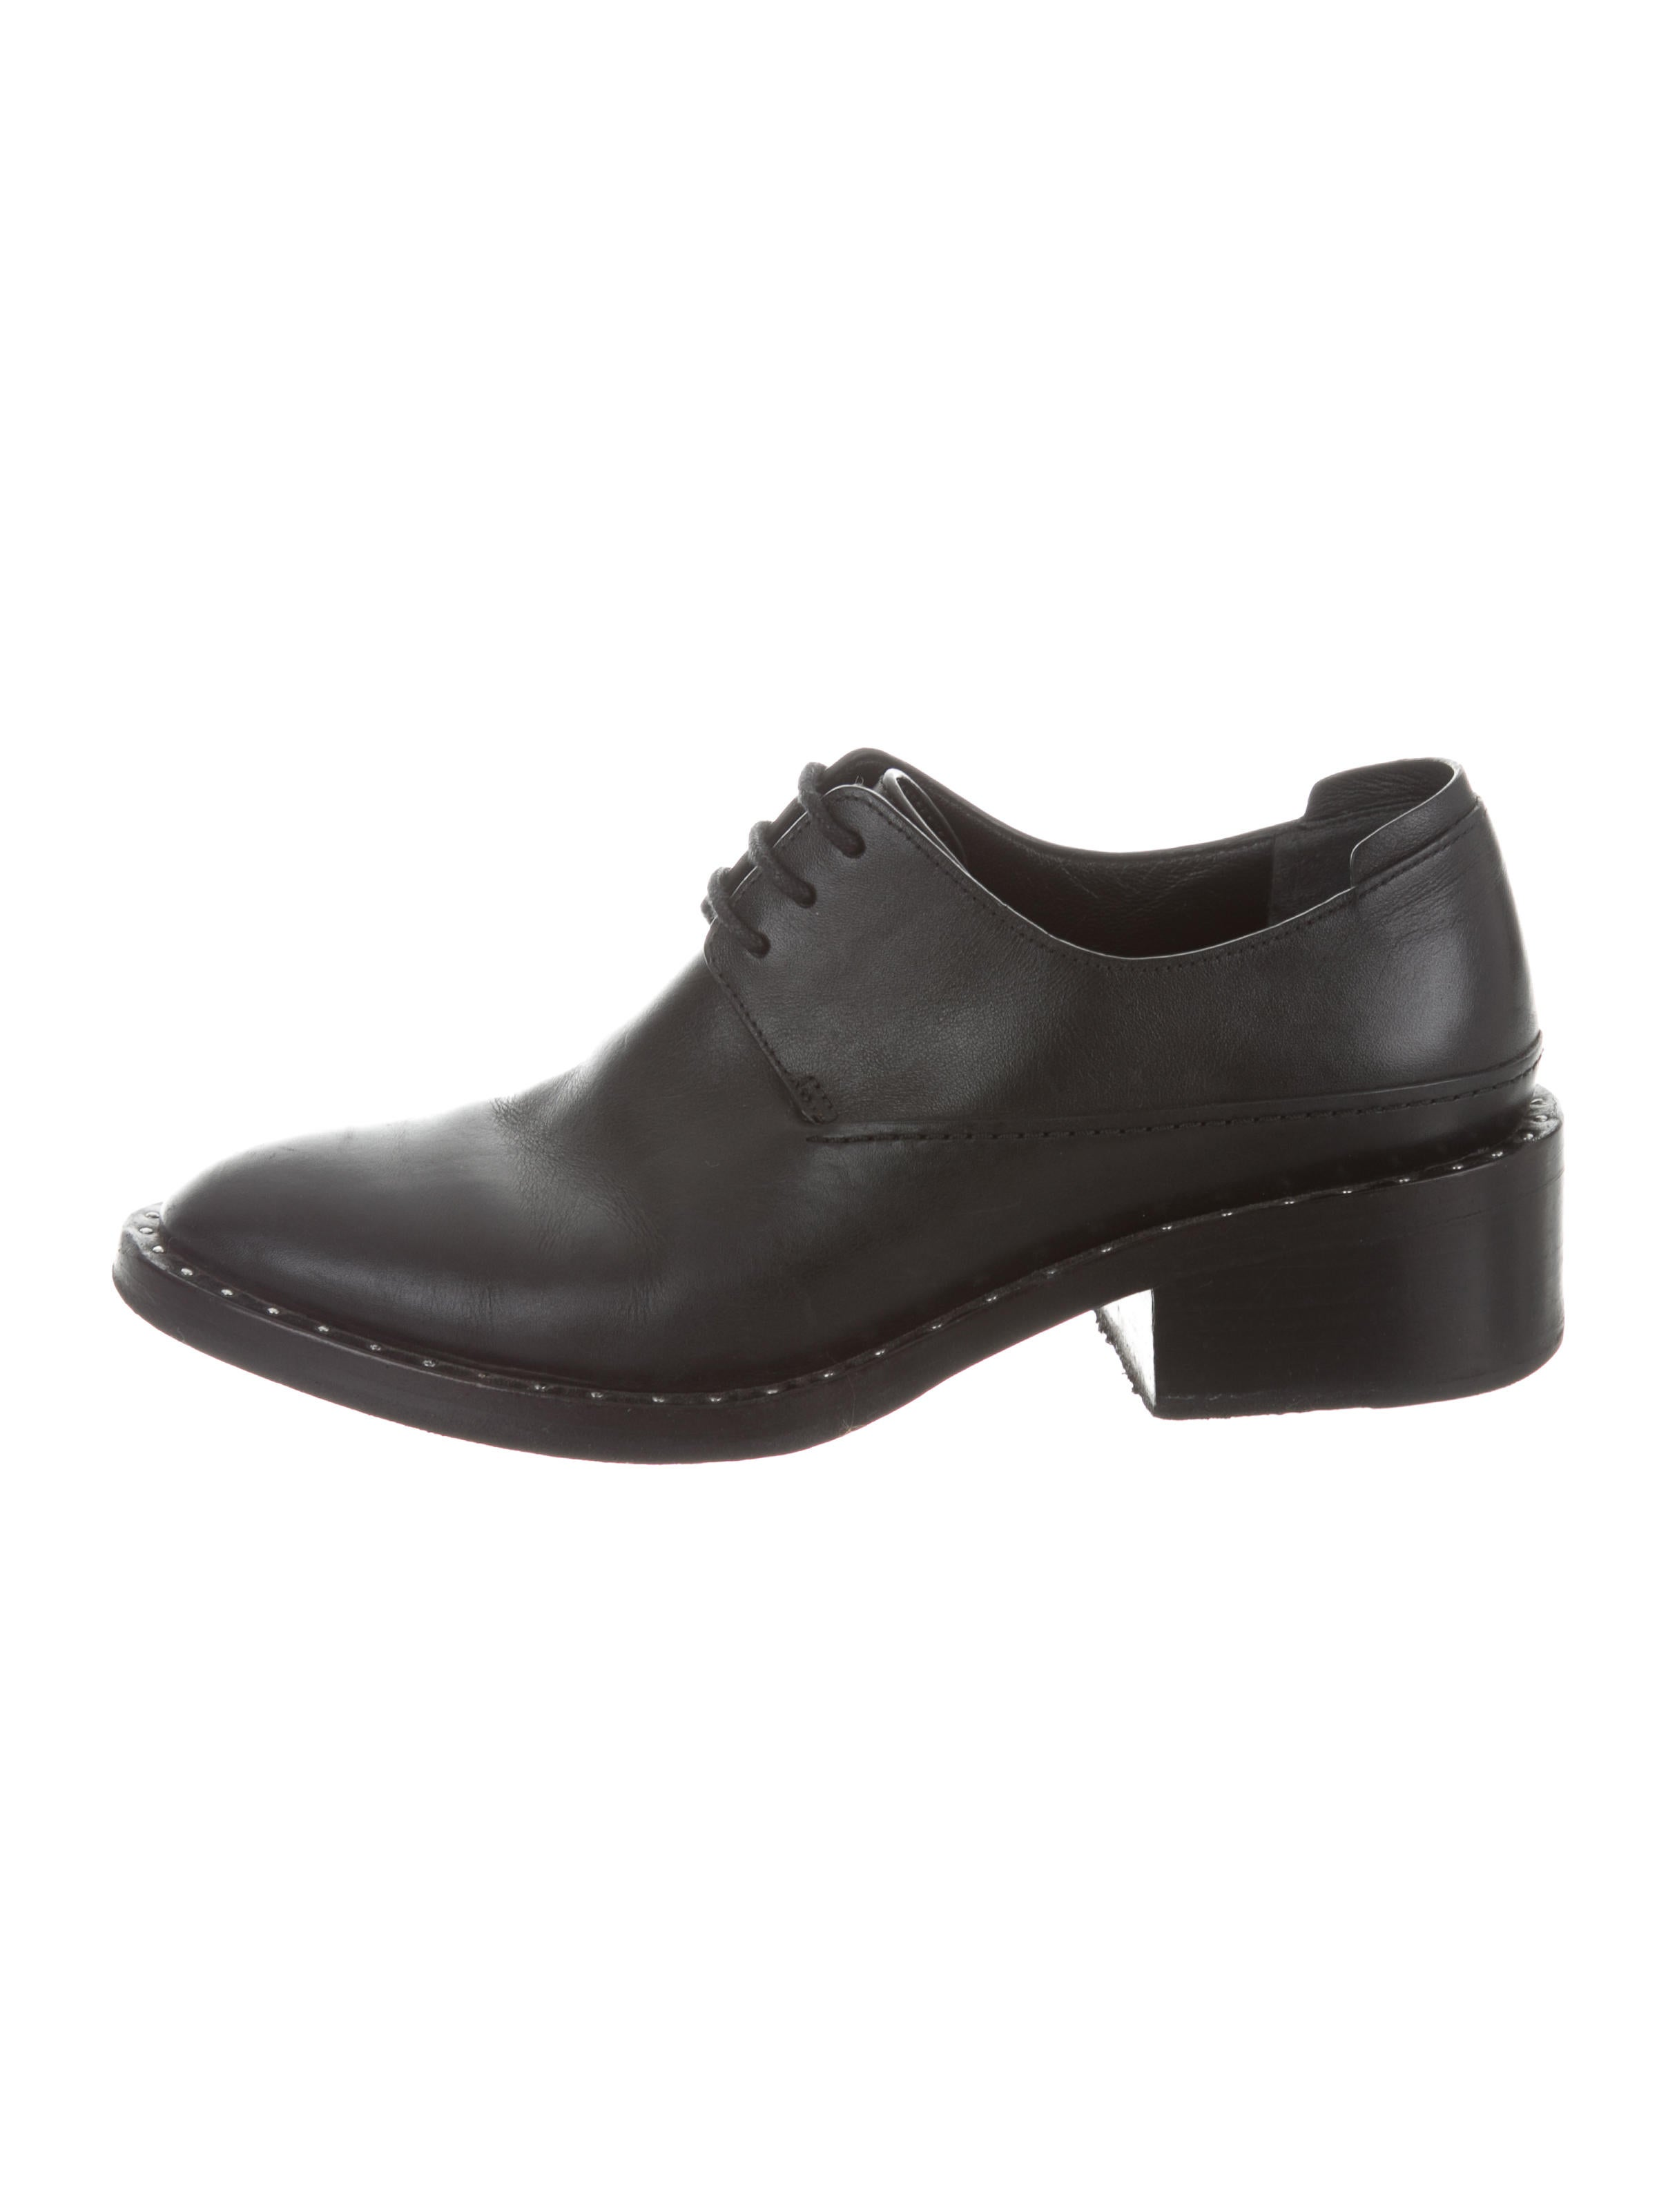 outlet wiki 3.1 Phillip Lim Studded Round-Toe Oxfords for sale cheap real buy cheap order outlet for cheap from china for sale eyS03G